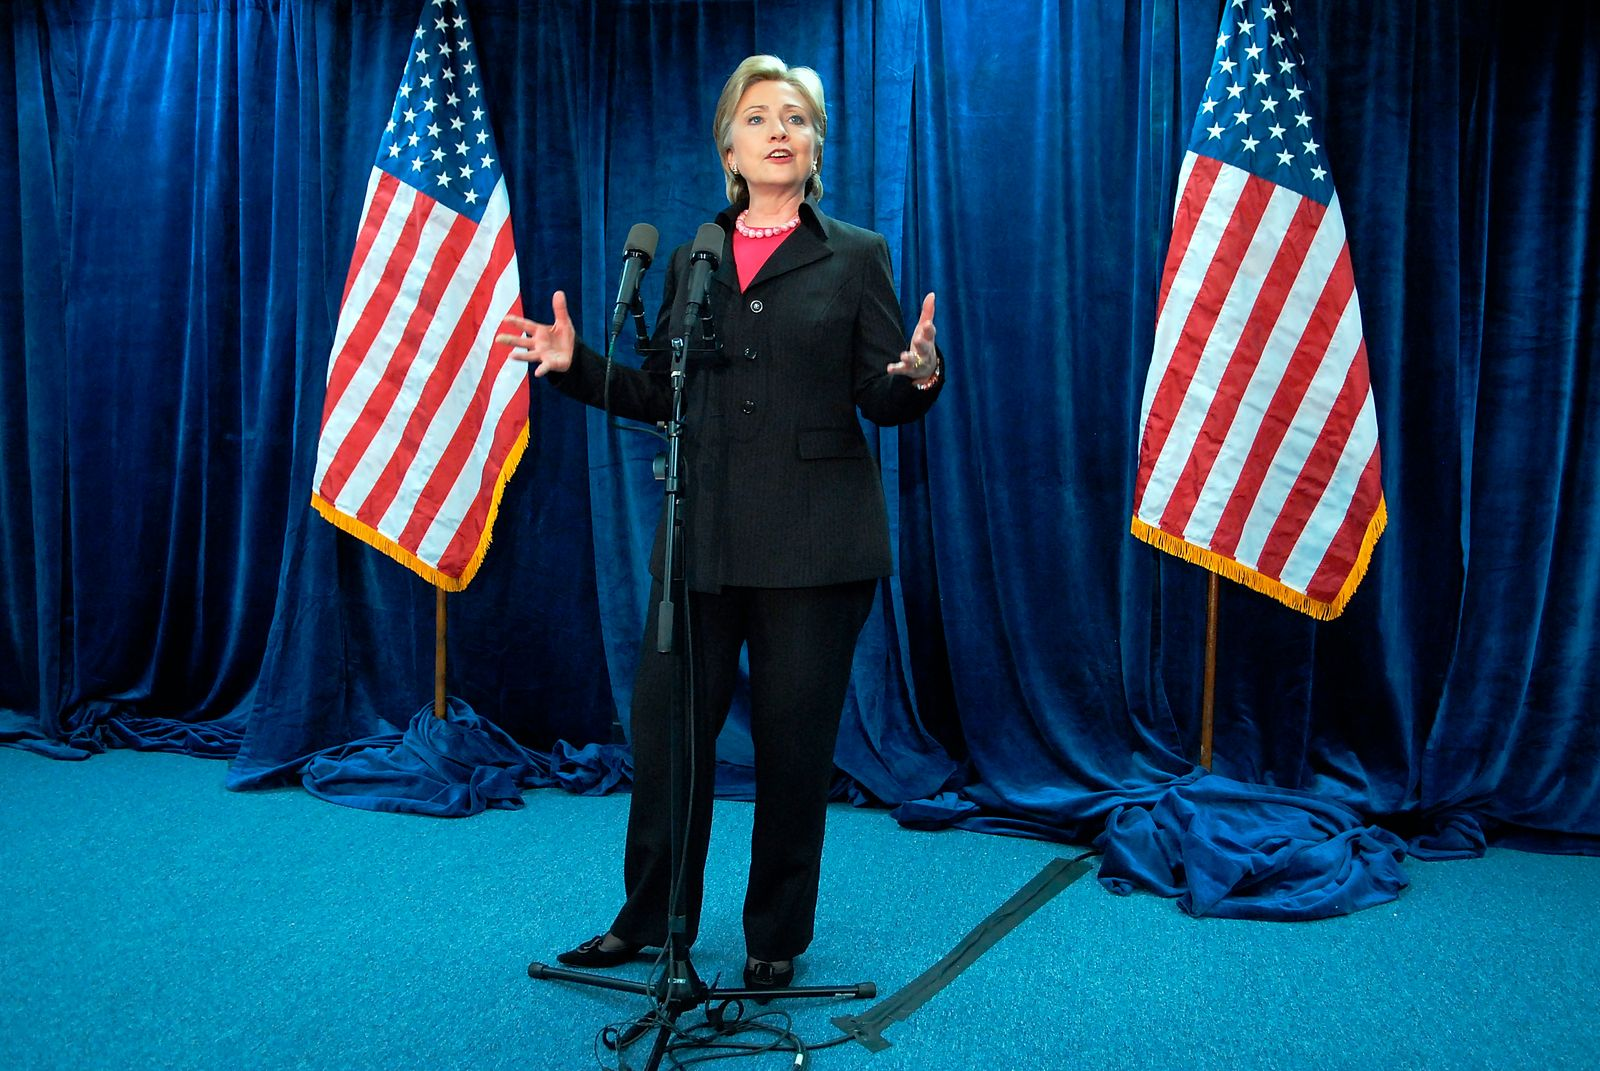 Hillary Clinton Holds News Conference At Her Campaign Headquarters